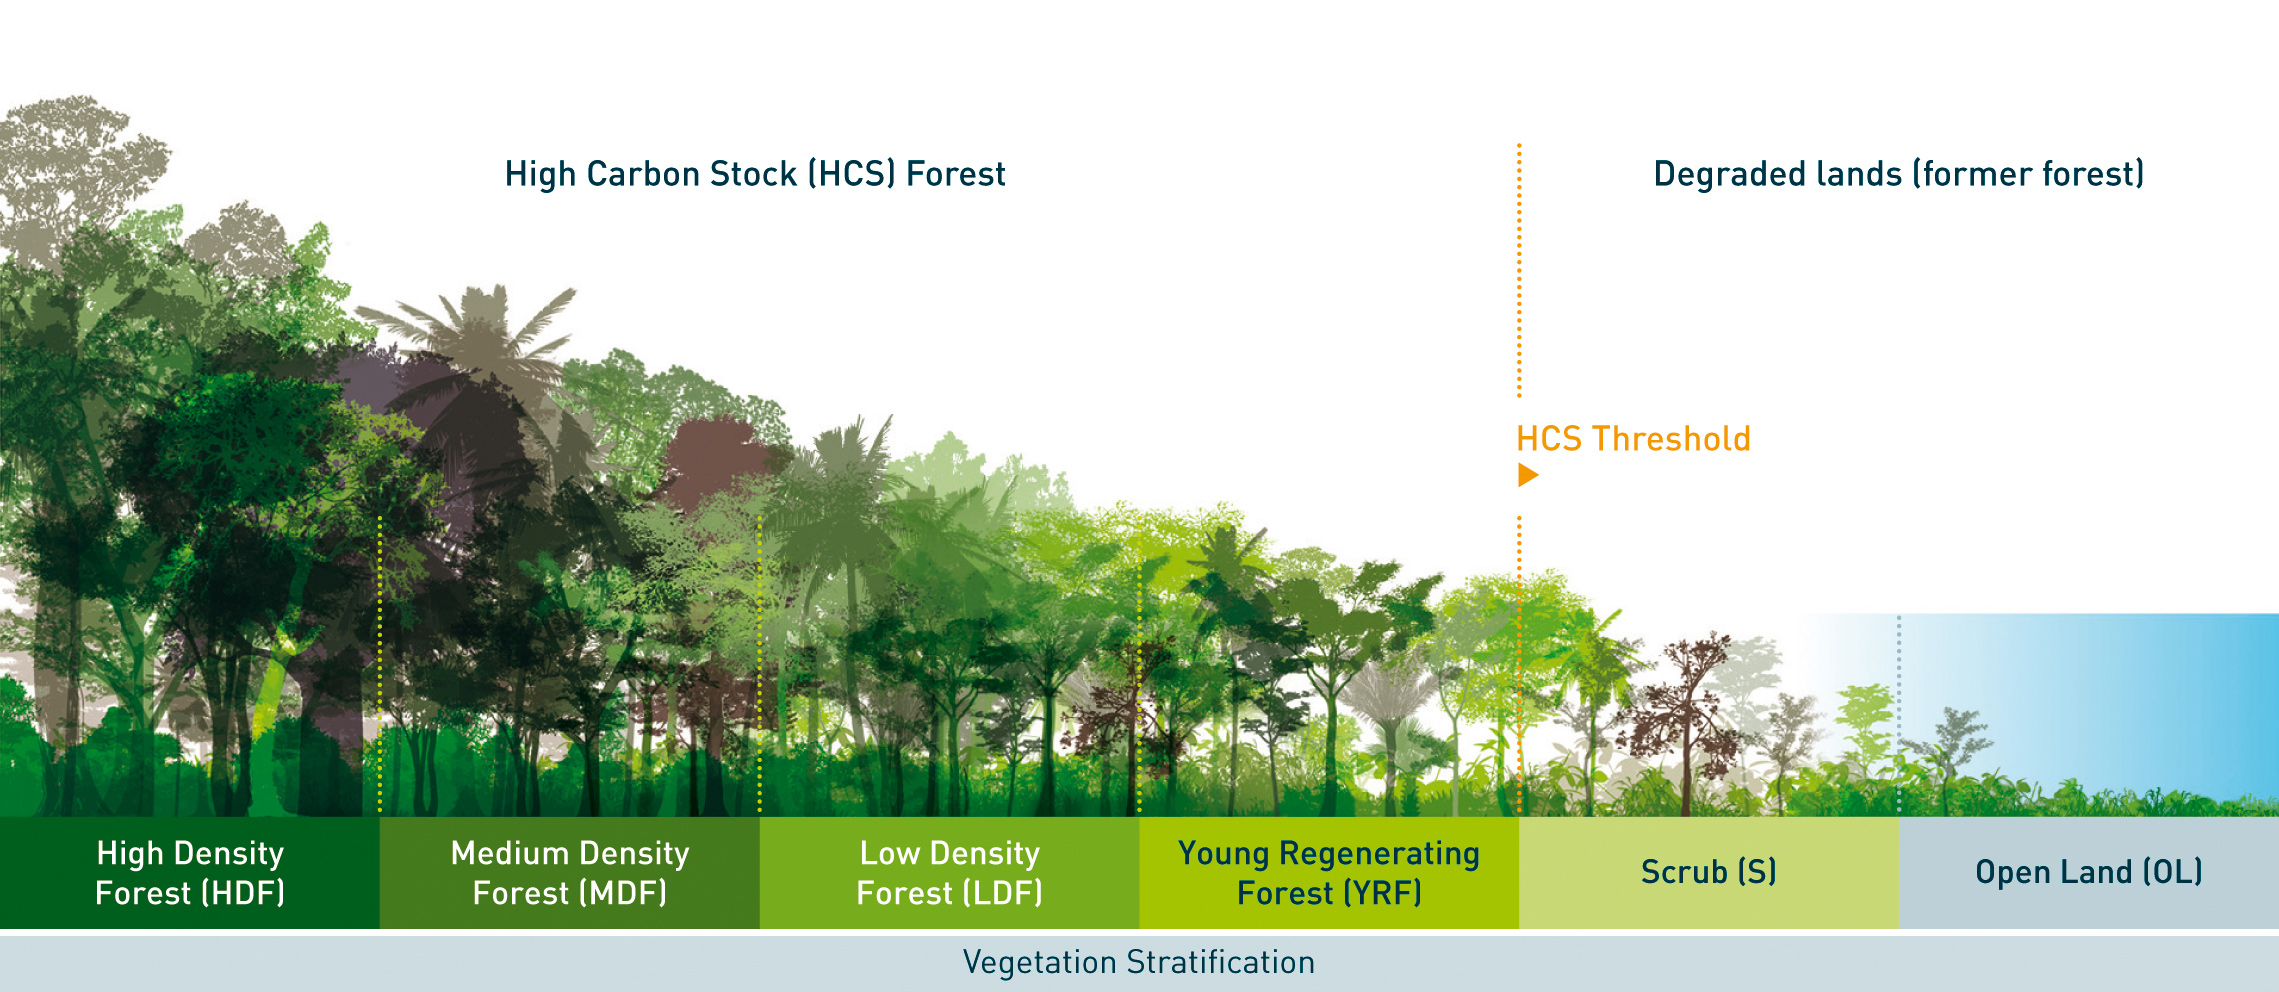 Vegetation Stratification. Module 4 Forest and vegetation stratification, HCS Approach Toolkit v2.0 May 2017. © 2017 High Carbon Stock Approach Steering Group.